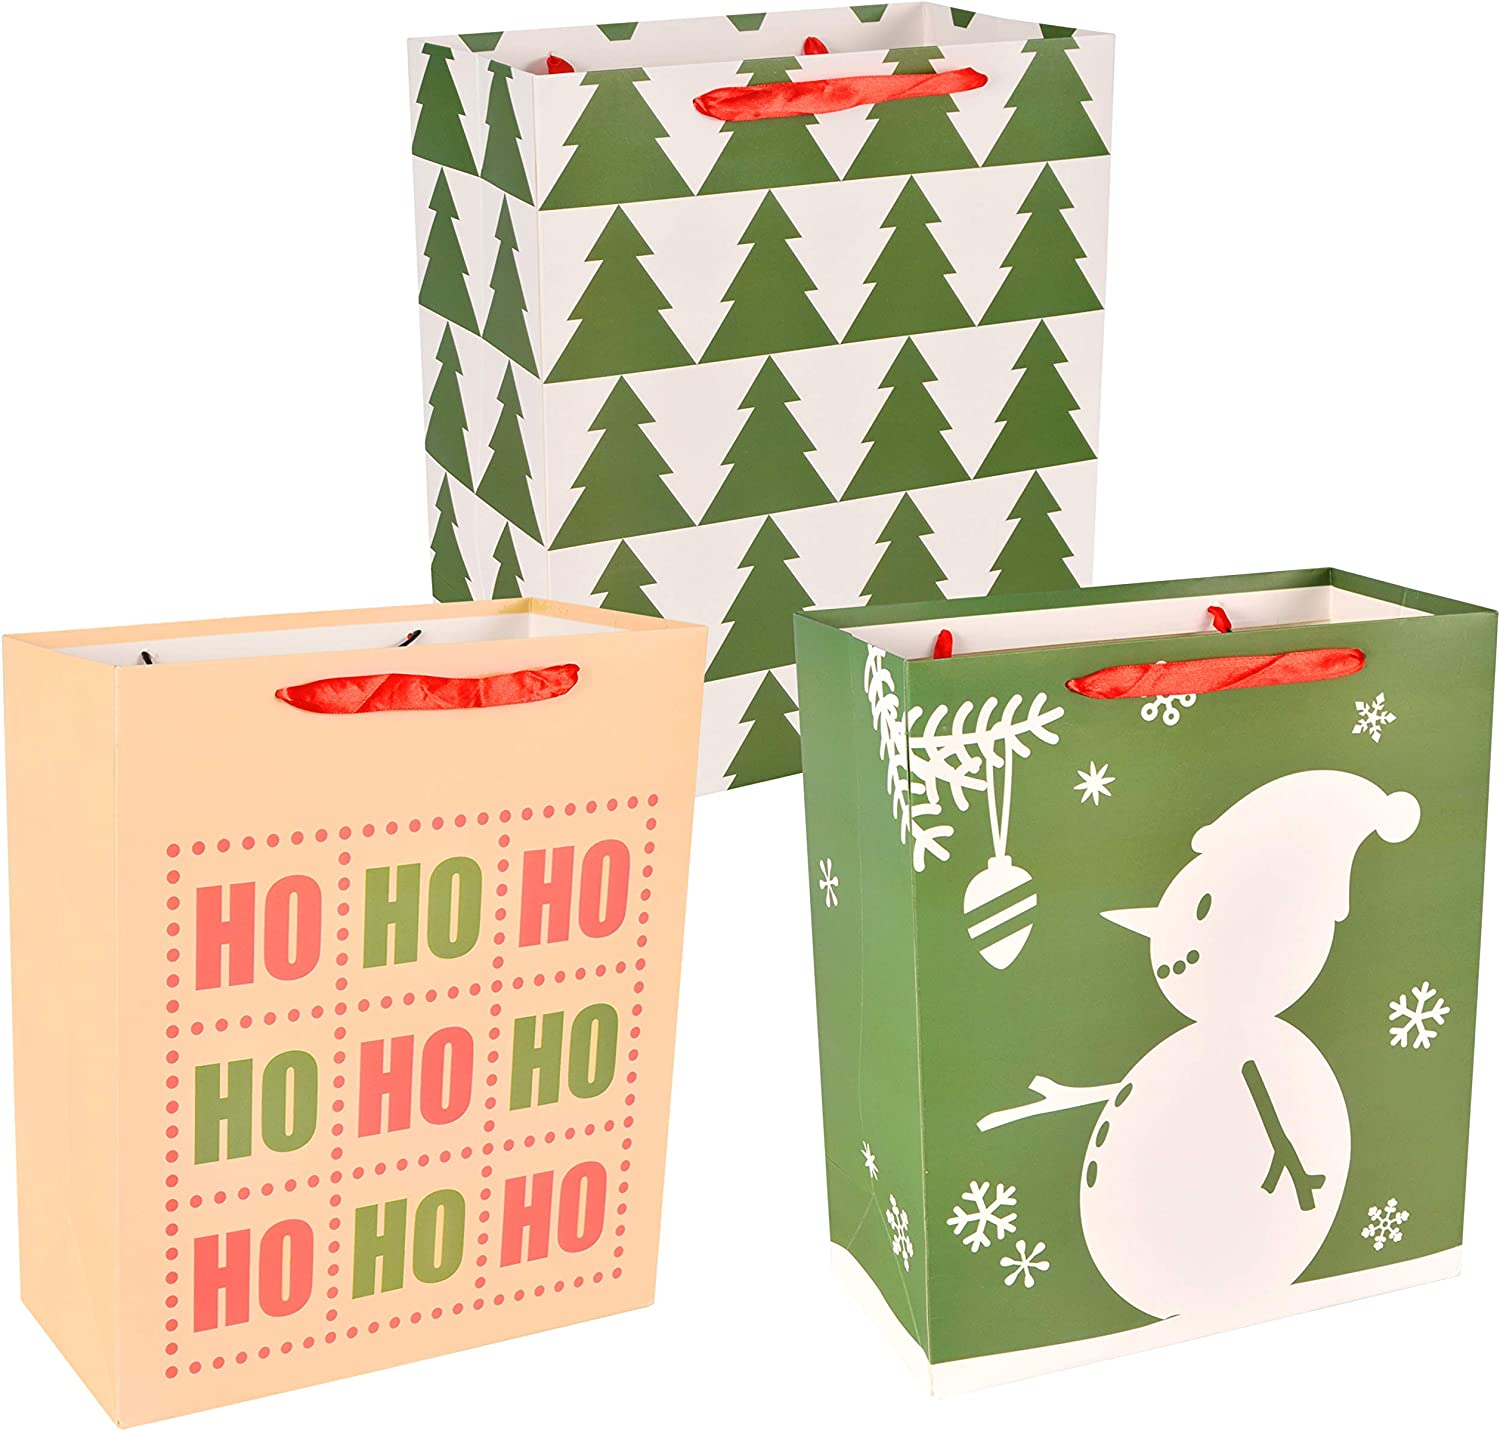 School Classrooms Party Favors Decoration 18 Pack Christmas Premium Holiday Gift Bags Assorted Creamy Kraft Style Prints for Xmas Goody Gift Bags Holiday Present Wrap D/écor.